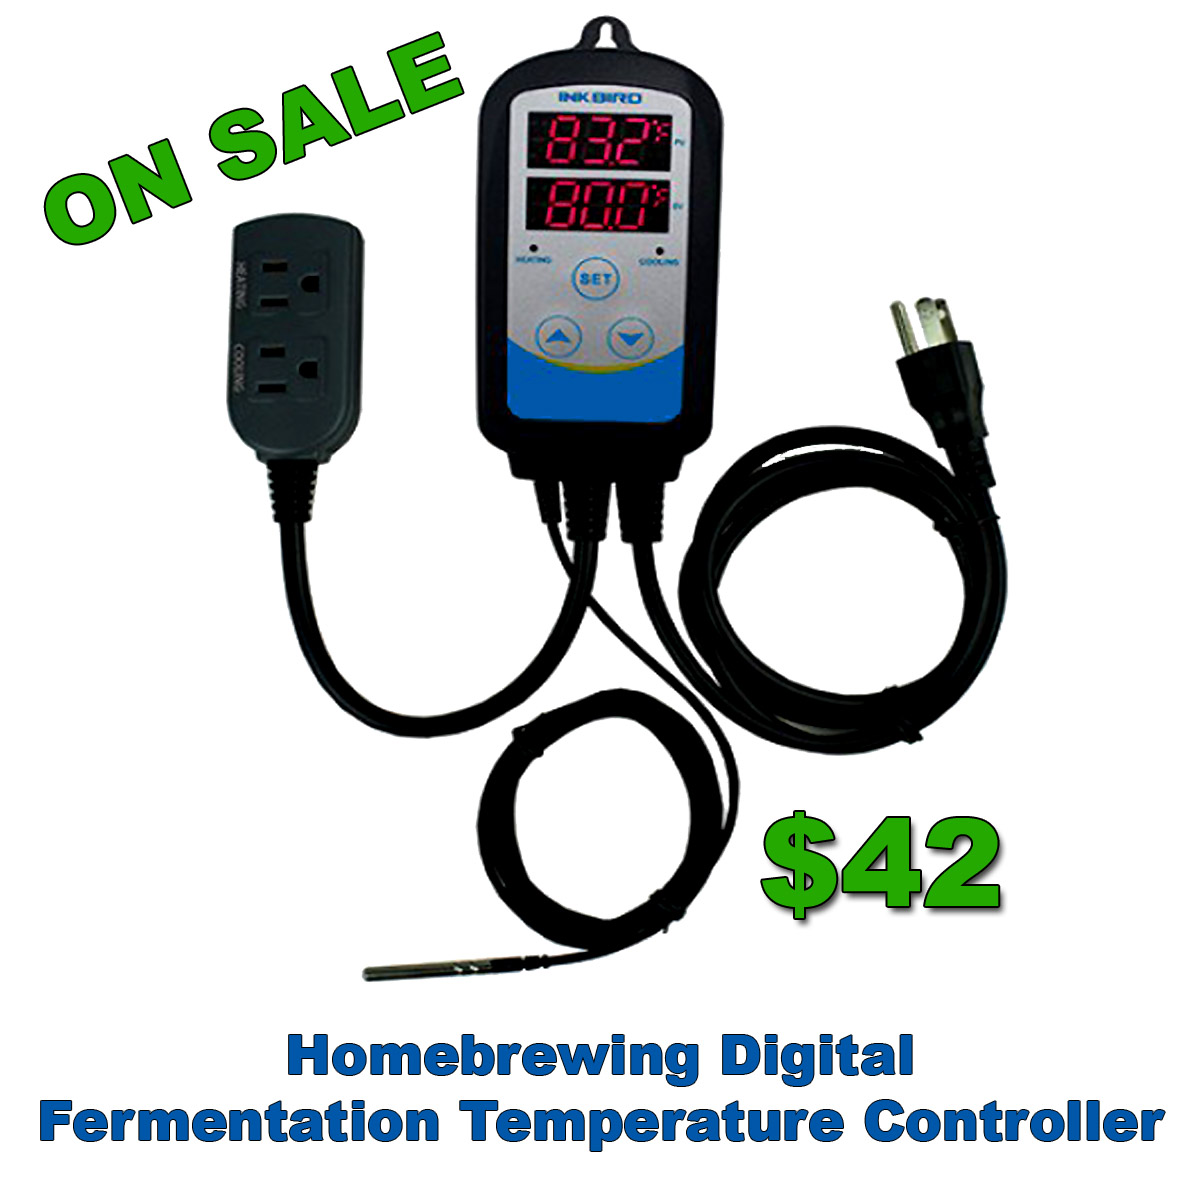 Code: Homebrewing Digital Fermentation Temperature Controller On Sale #22B000